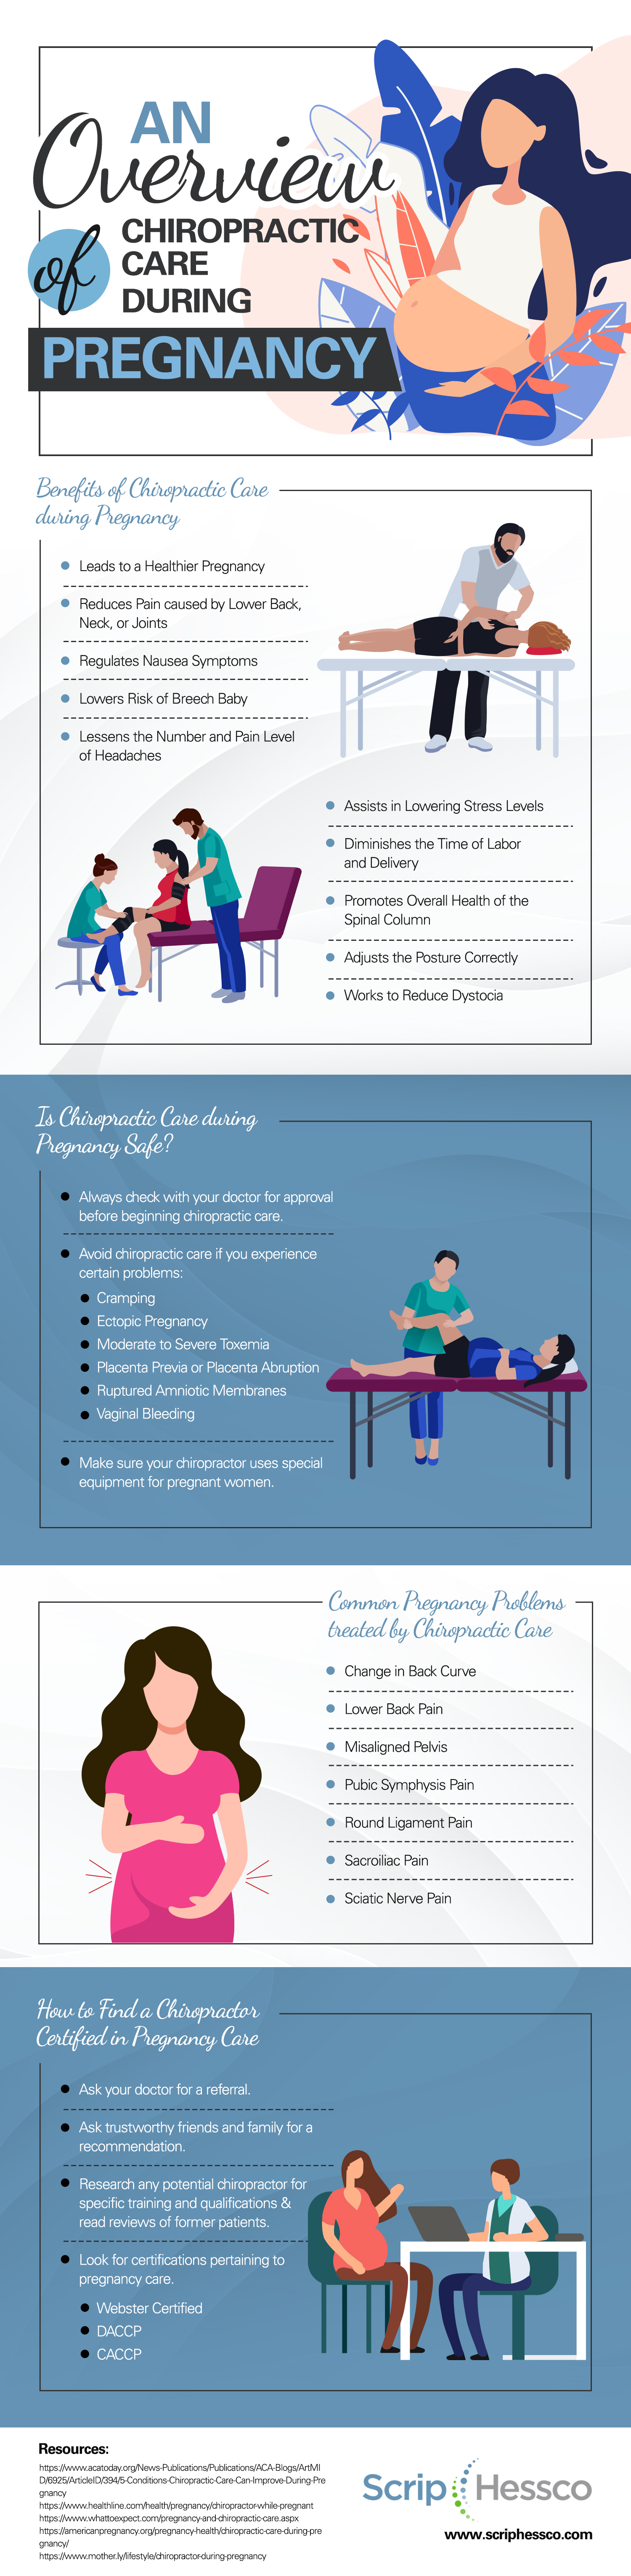 An Overview of Chiropractic Care during Pregnancy